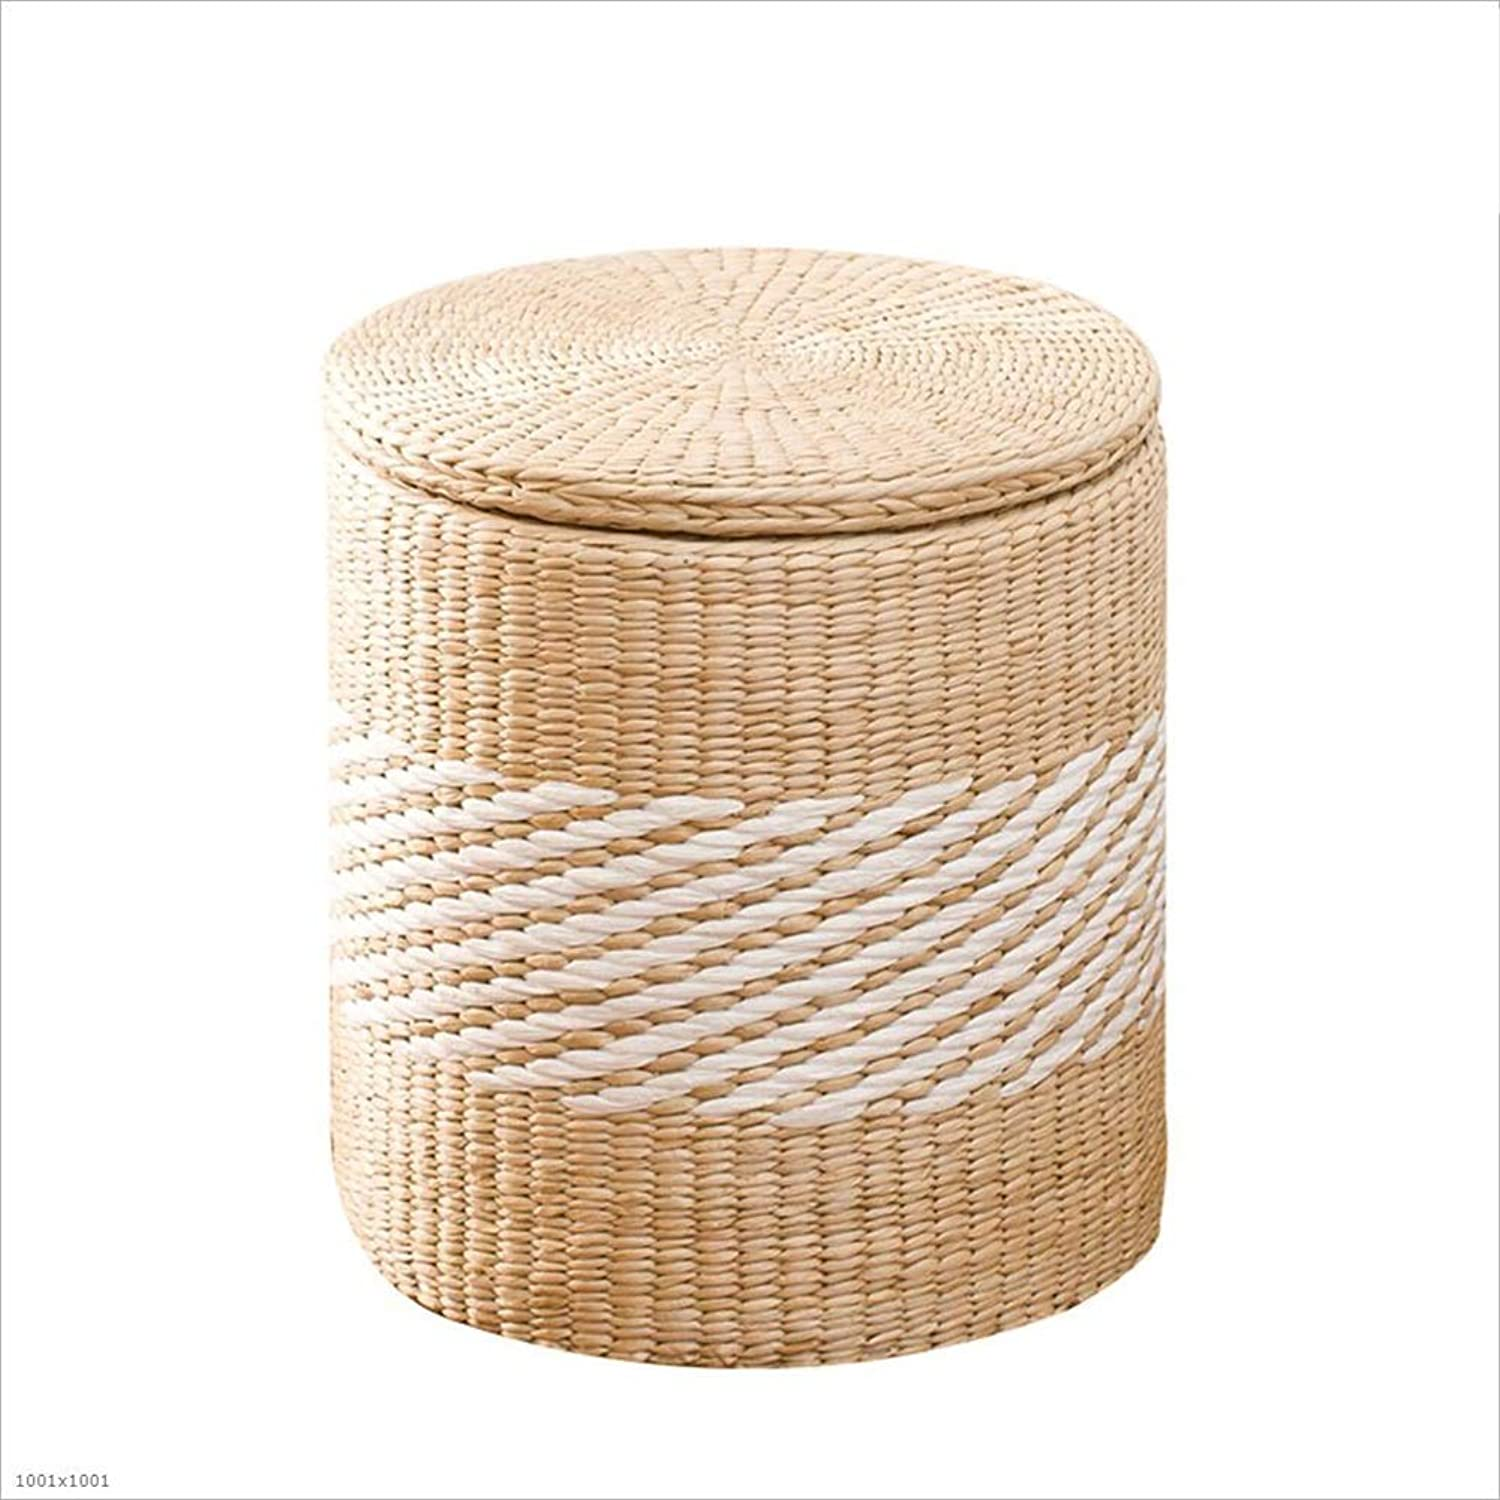 Stools Footstool Step Stool Vine Straw Storage Sort Out Covered Wholesale Footrest Sofa Can Sit Toy CONGMING (color   A-Round-Grass, Size   Small)